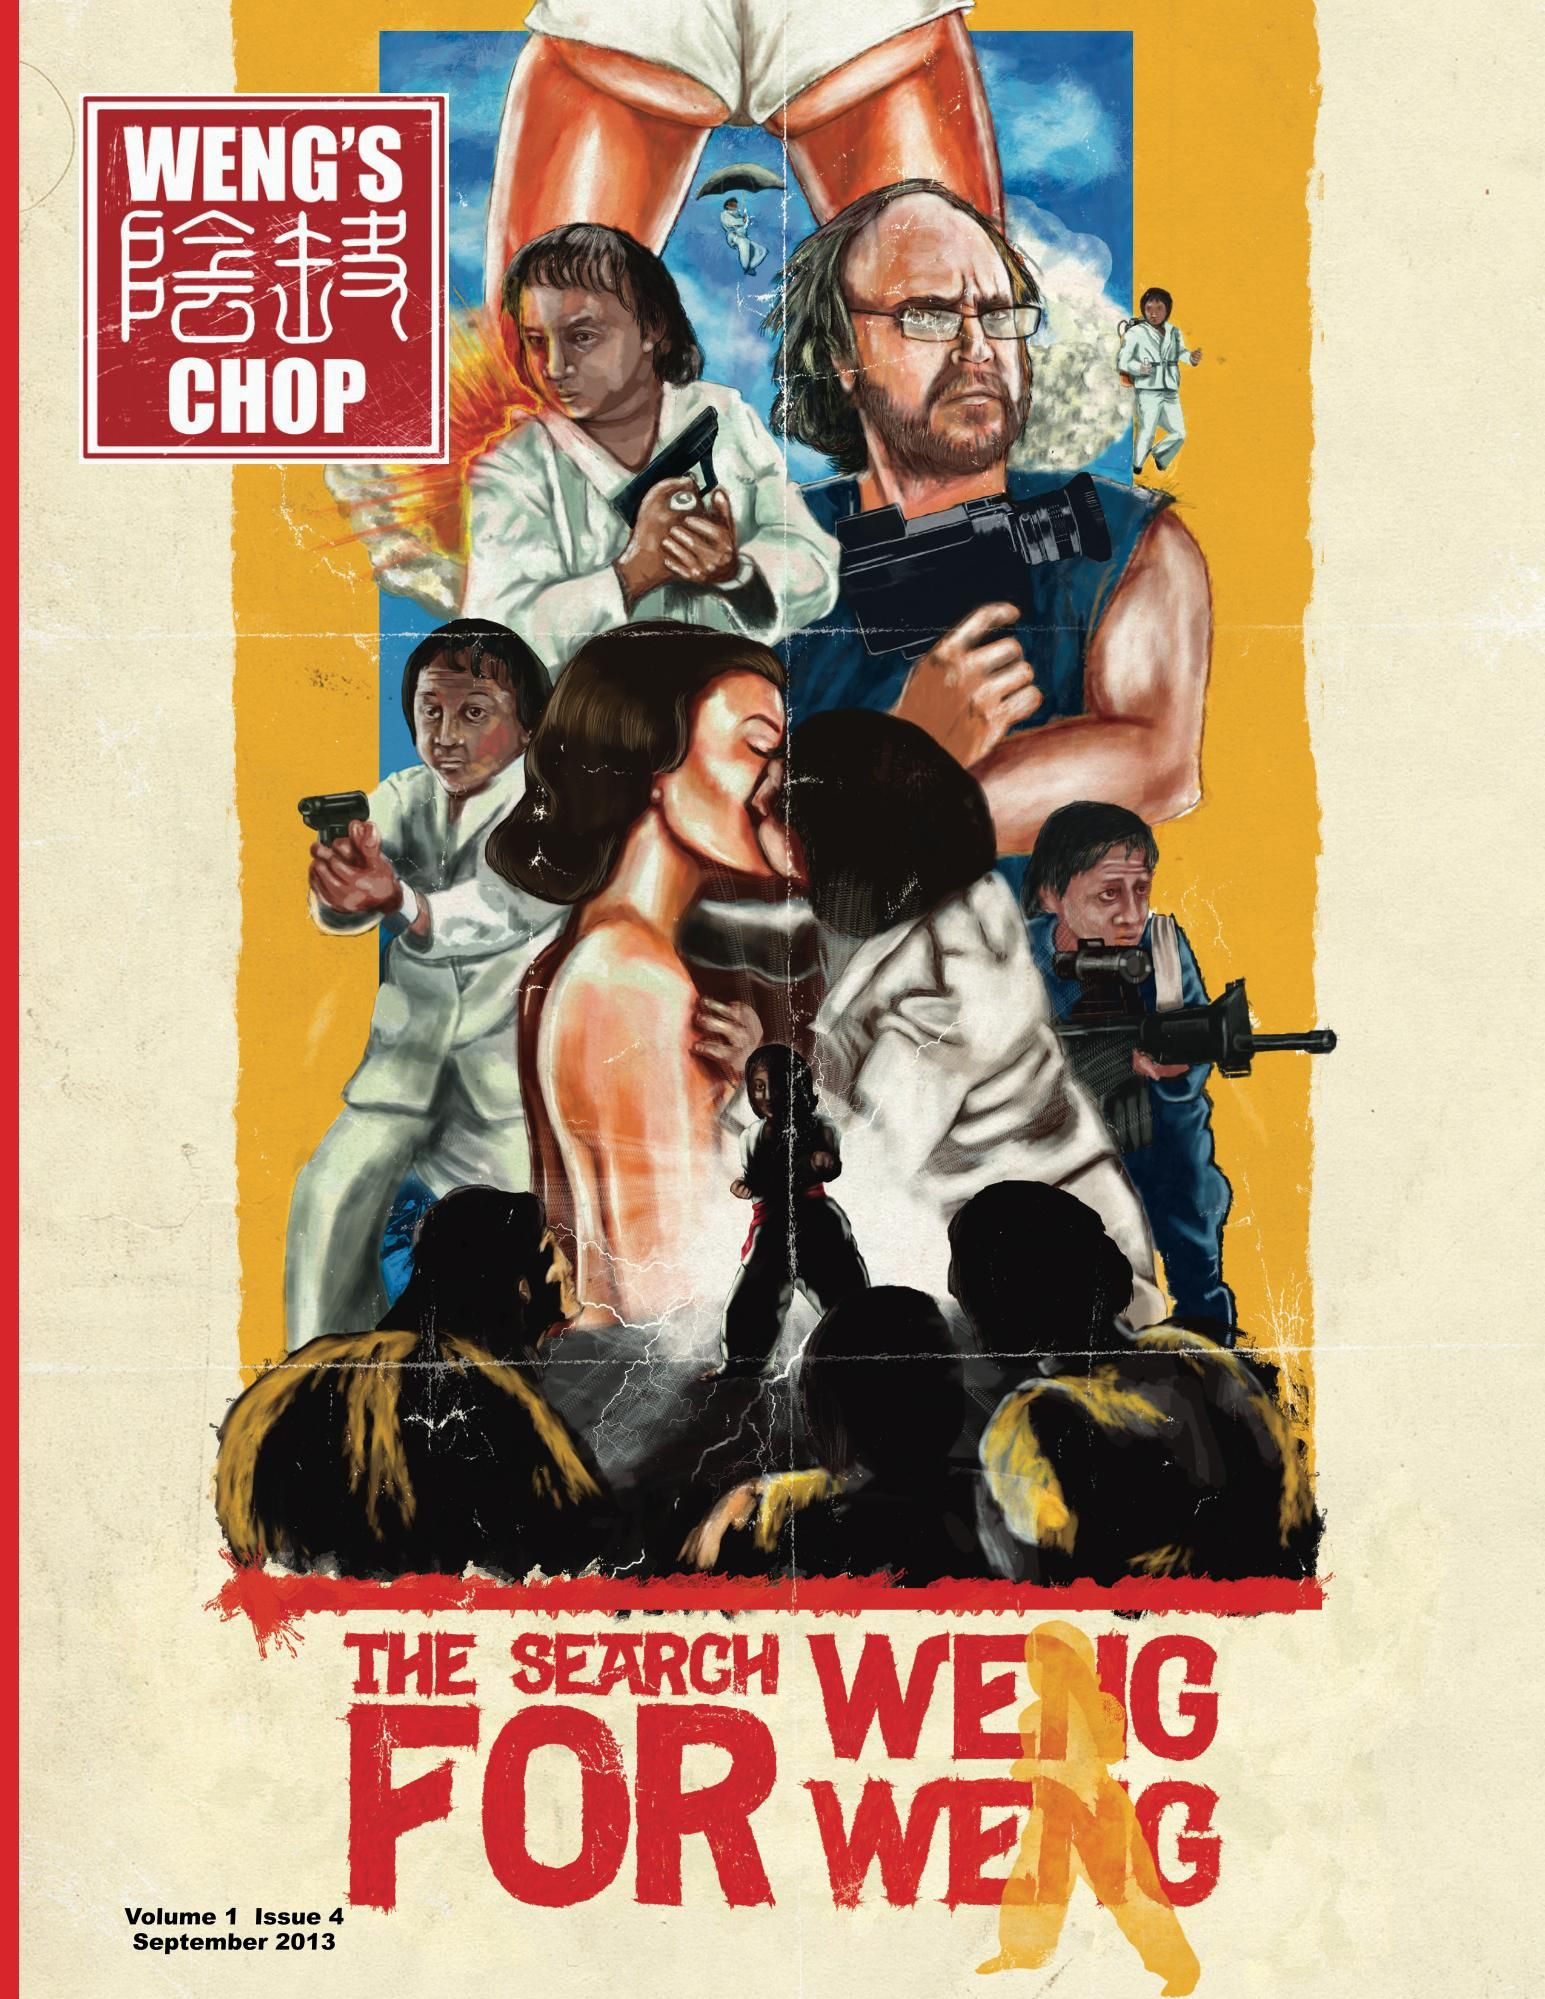 Weng S Chop Magazine 4 The Search For Weng Weng Cover Illustrated By Matt O Neill Asian Film Vintage Movies Documentaries